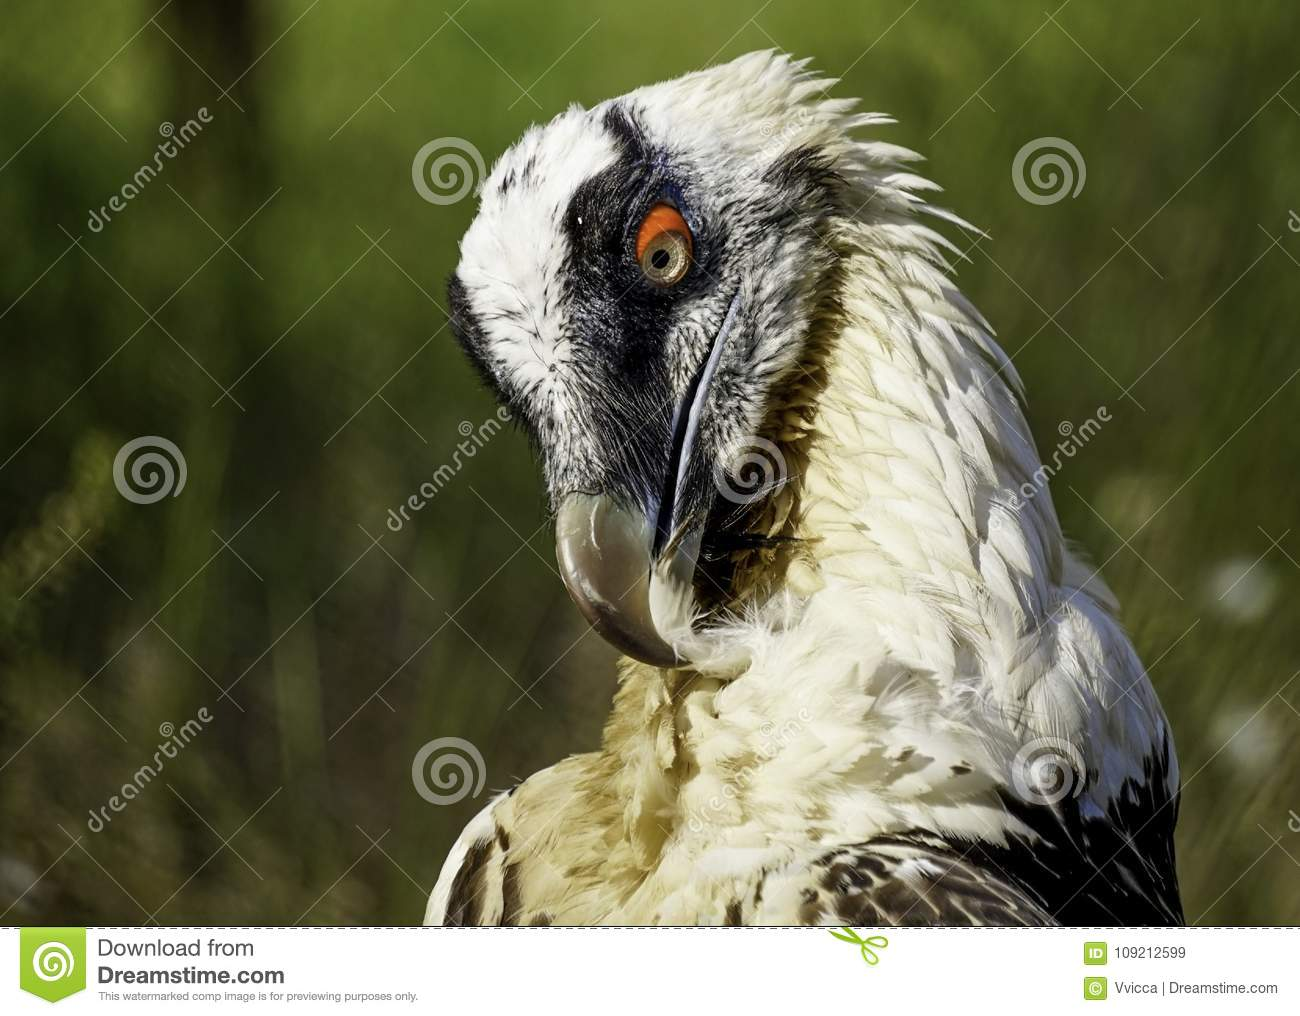 A large bird of prey on a green natural background..